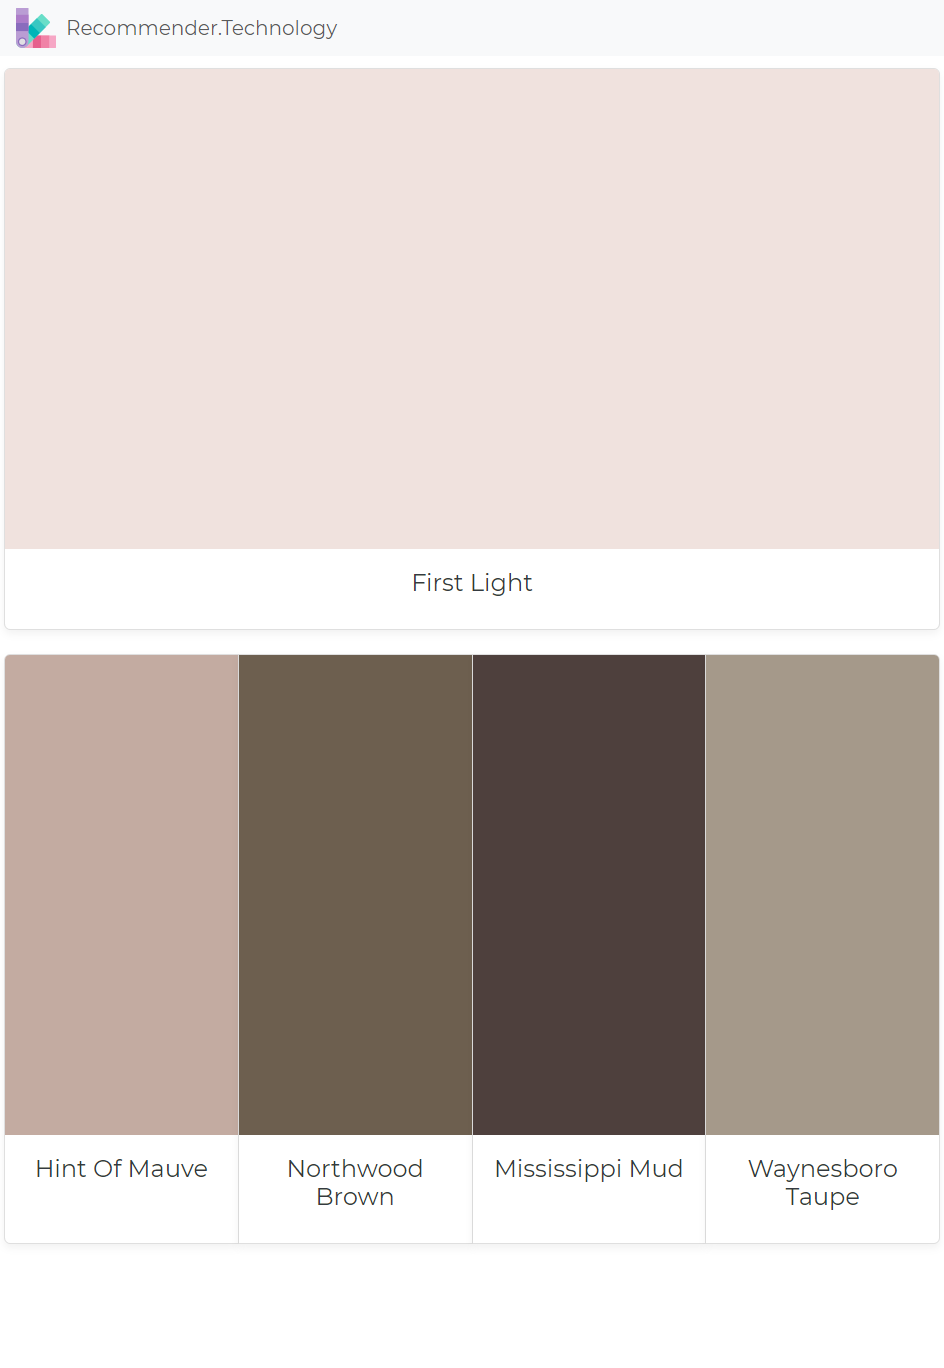 First Light Hint Of Mauve Northwood Brown Mississippi Mud Waynesboro Taupe Pink Accent Walls Paint Colors Benjamin Moore Brown Decor